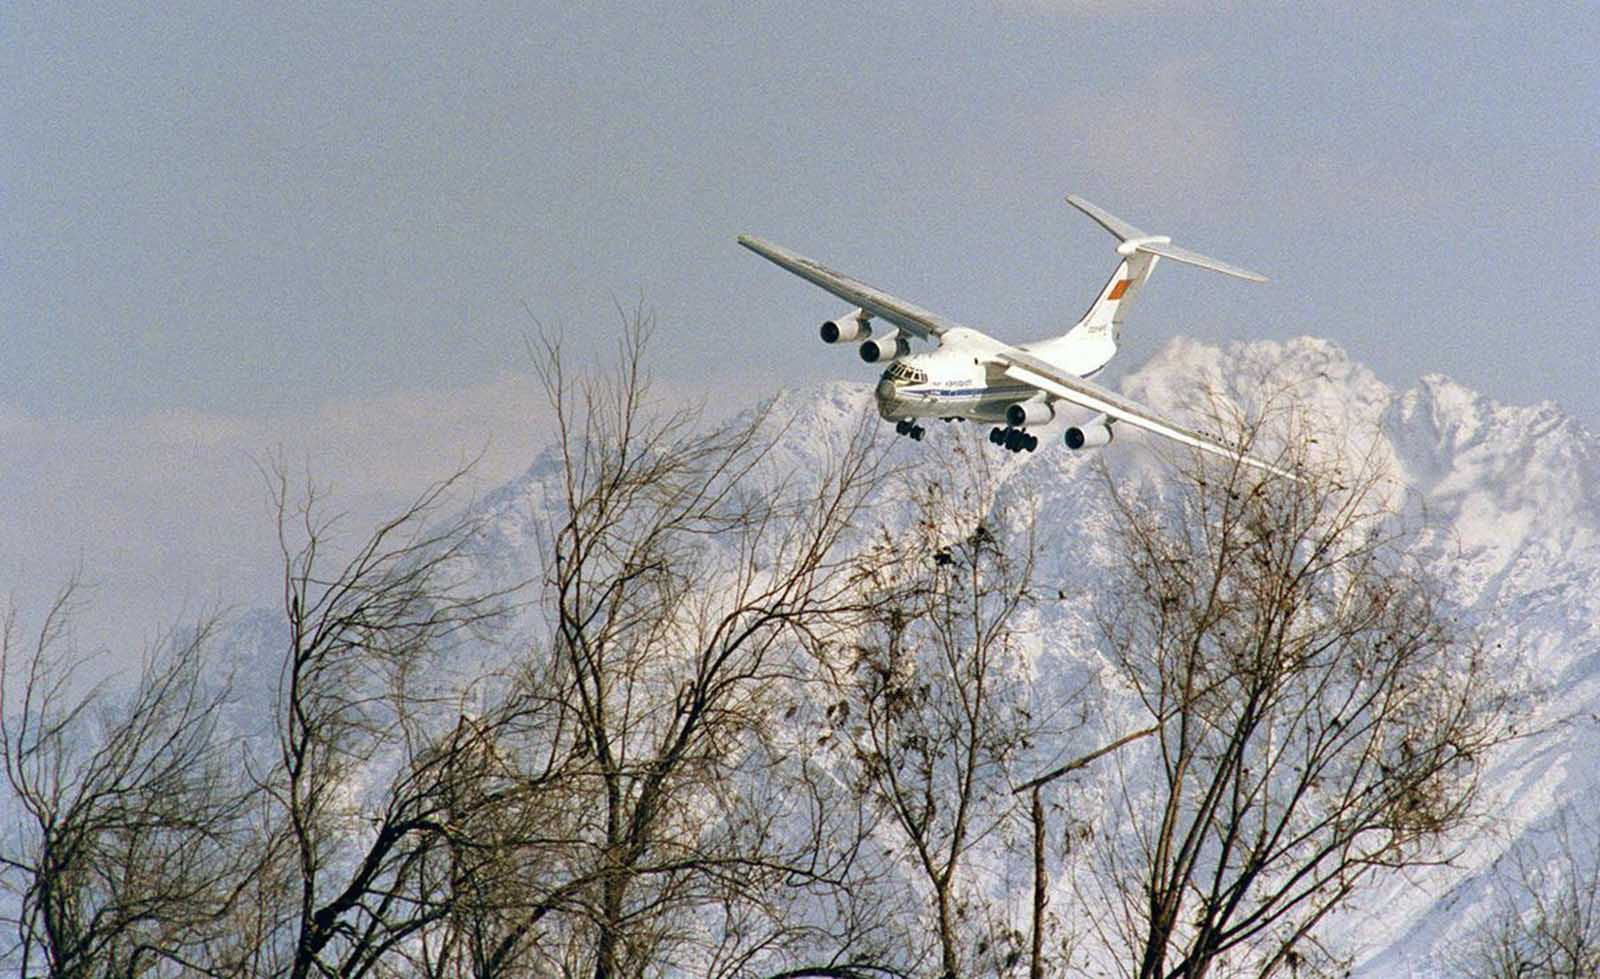 Wheels down, a Soviet transport aircraft seems to brush the treetops as it comes in to land at Kabul Airport on February 8, 1989. Soviet pilots flying in out of Kabul took defensive measures, including the firing of flares to divert heat-seeking missiles.